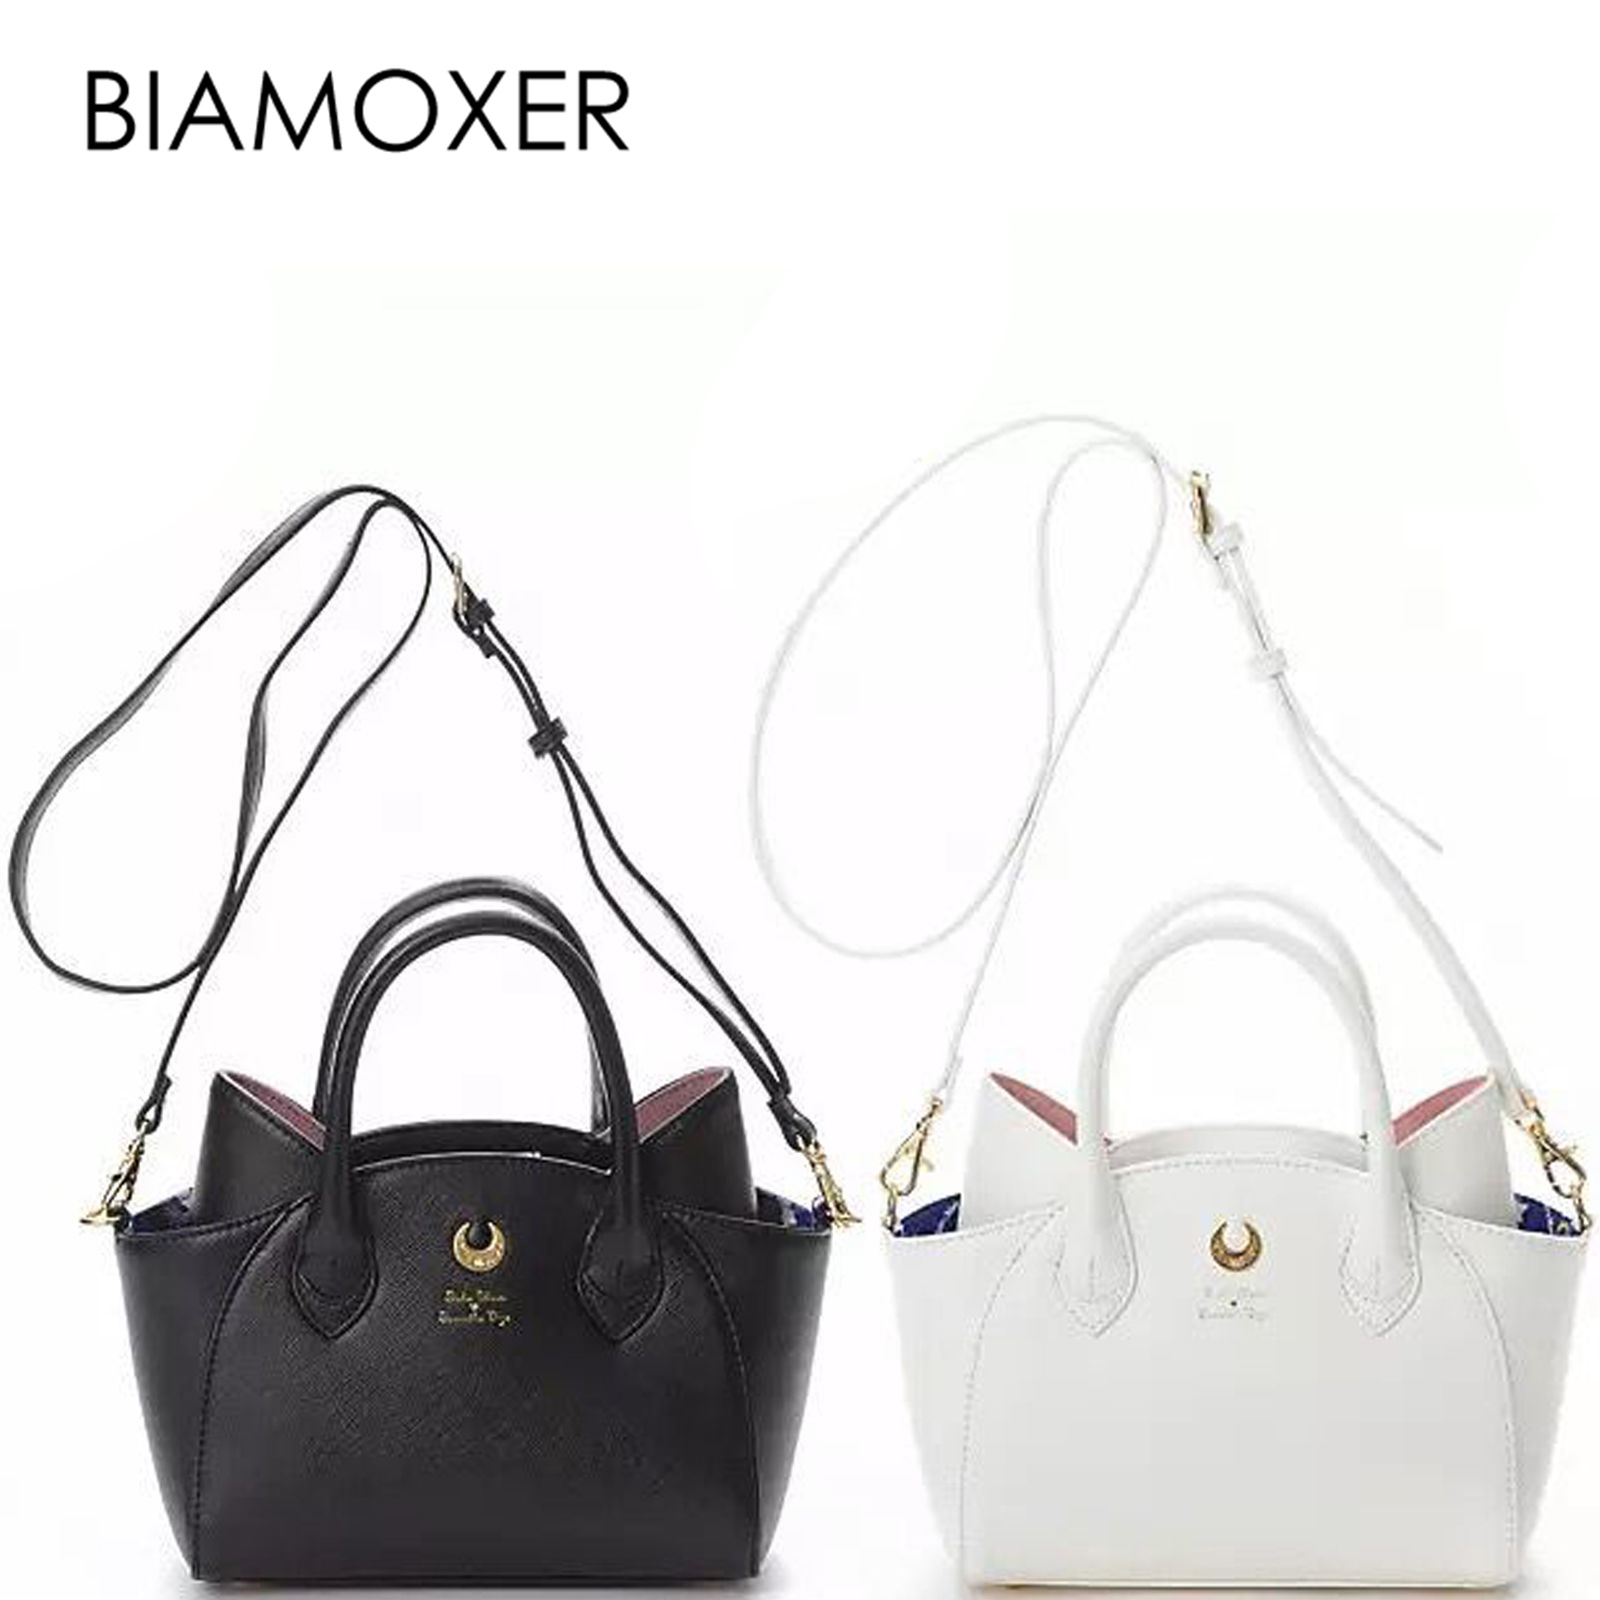 Biamoxer 2 colors 2 size Sailor Moon Luna Cat Women Handbag Handle Corssbody Shoulder Bag Free Pendant